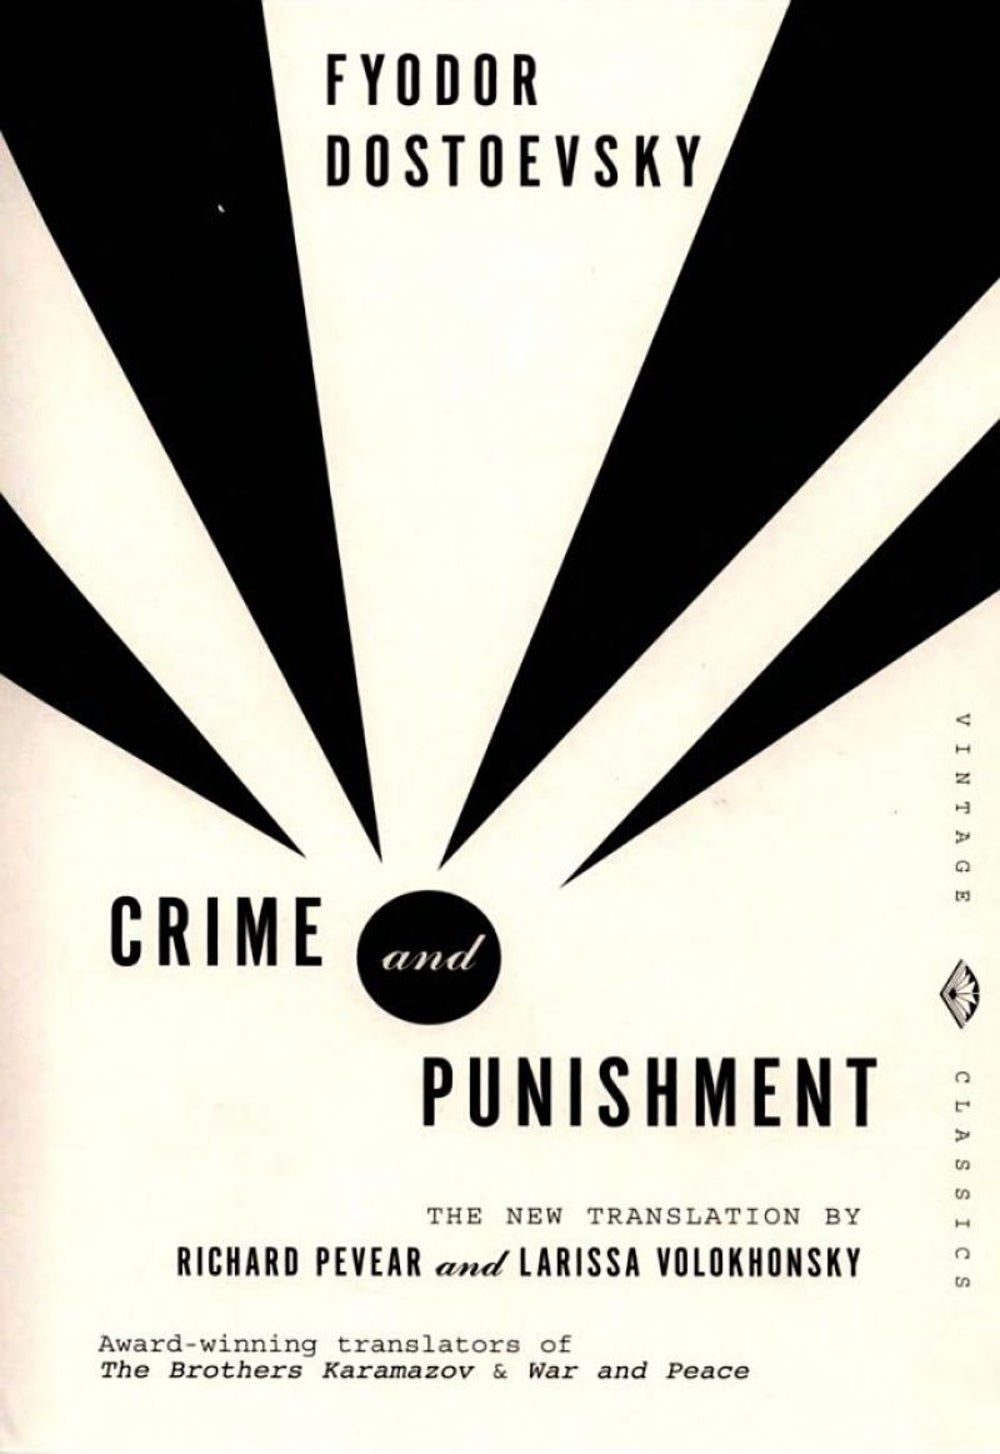 Insights Editor Liz Webber -- 'Crime and Punishment' by Fyodor Dostoevsky